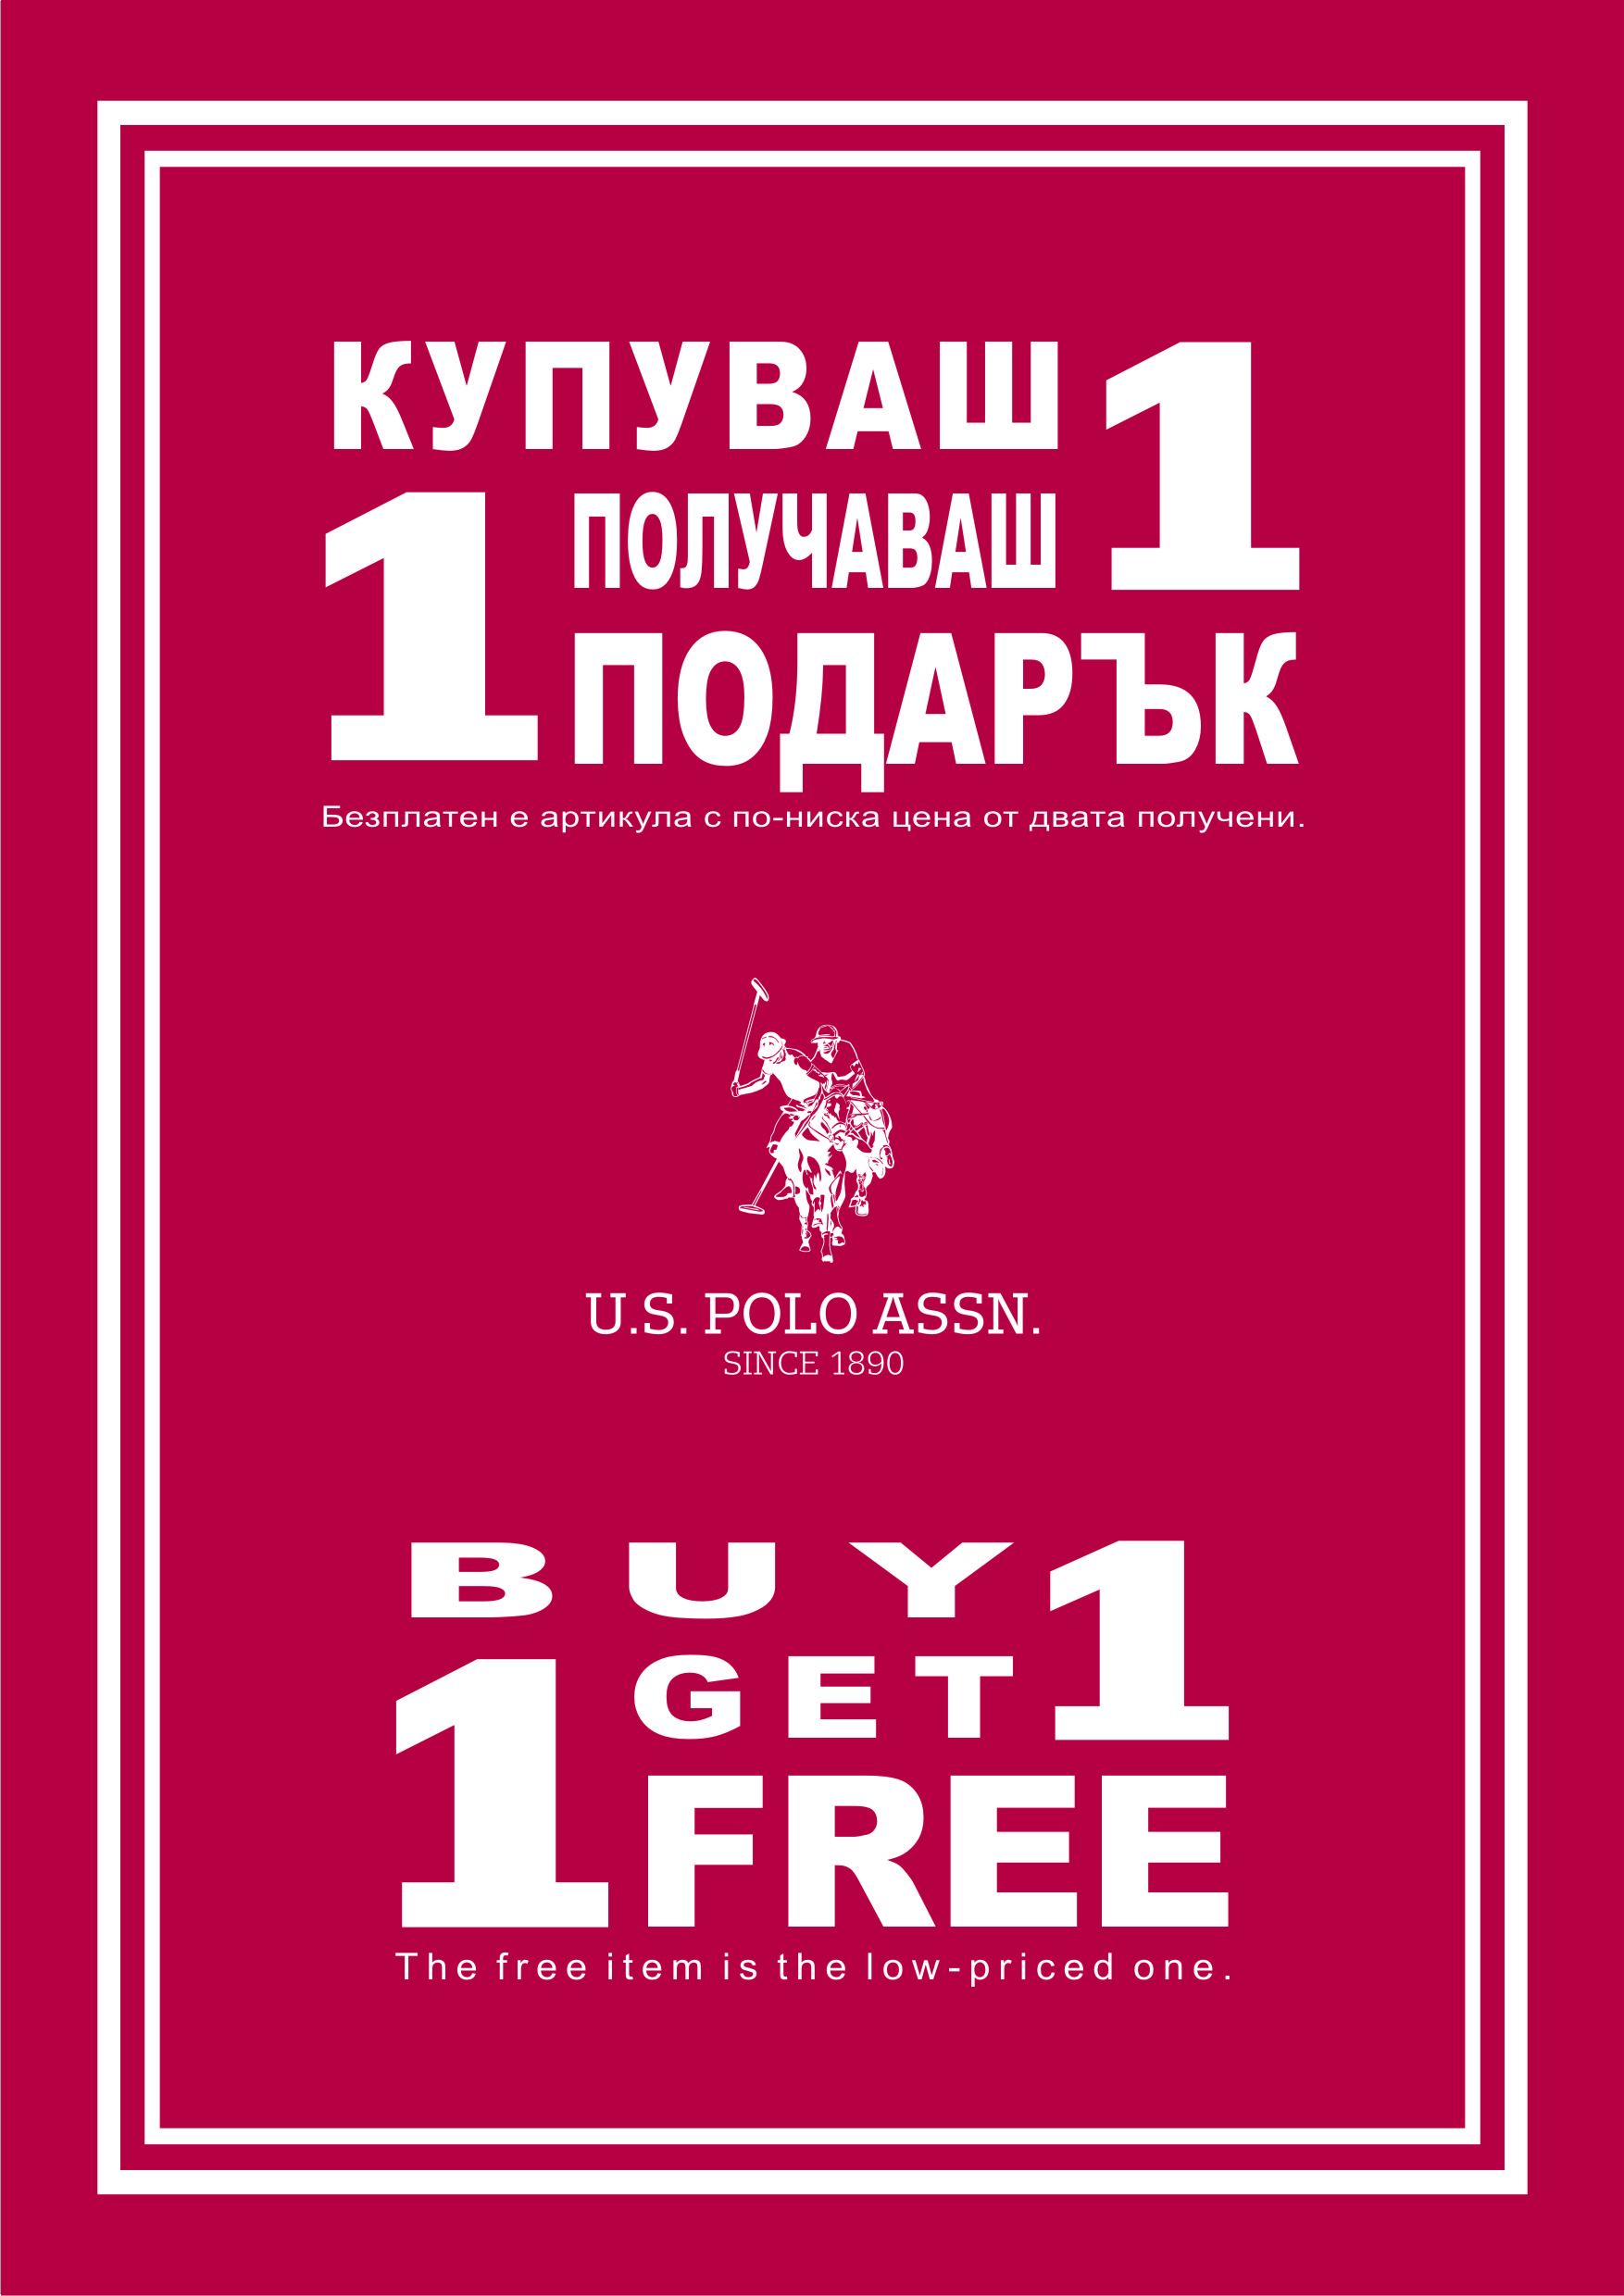 A great promotion at US POLO ASSN